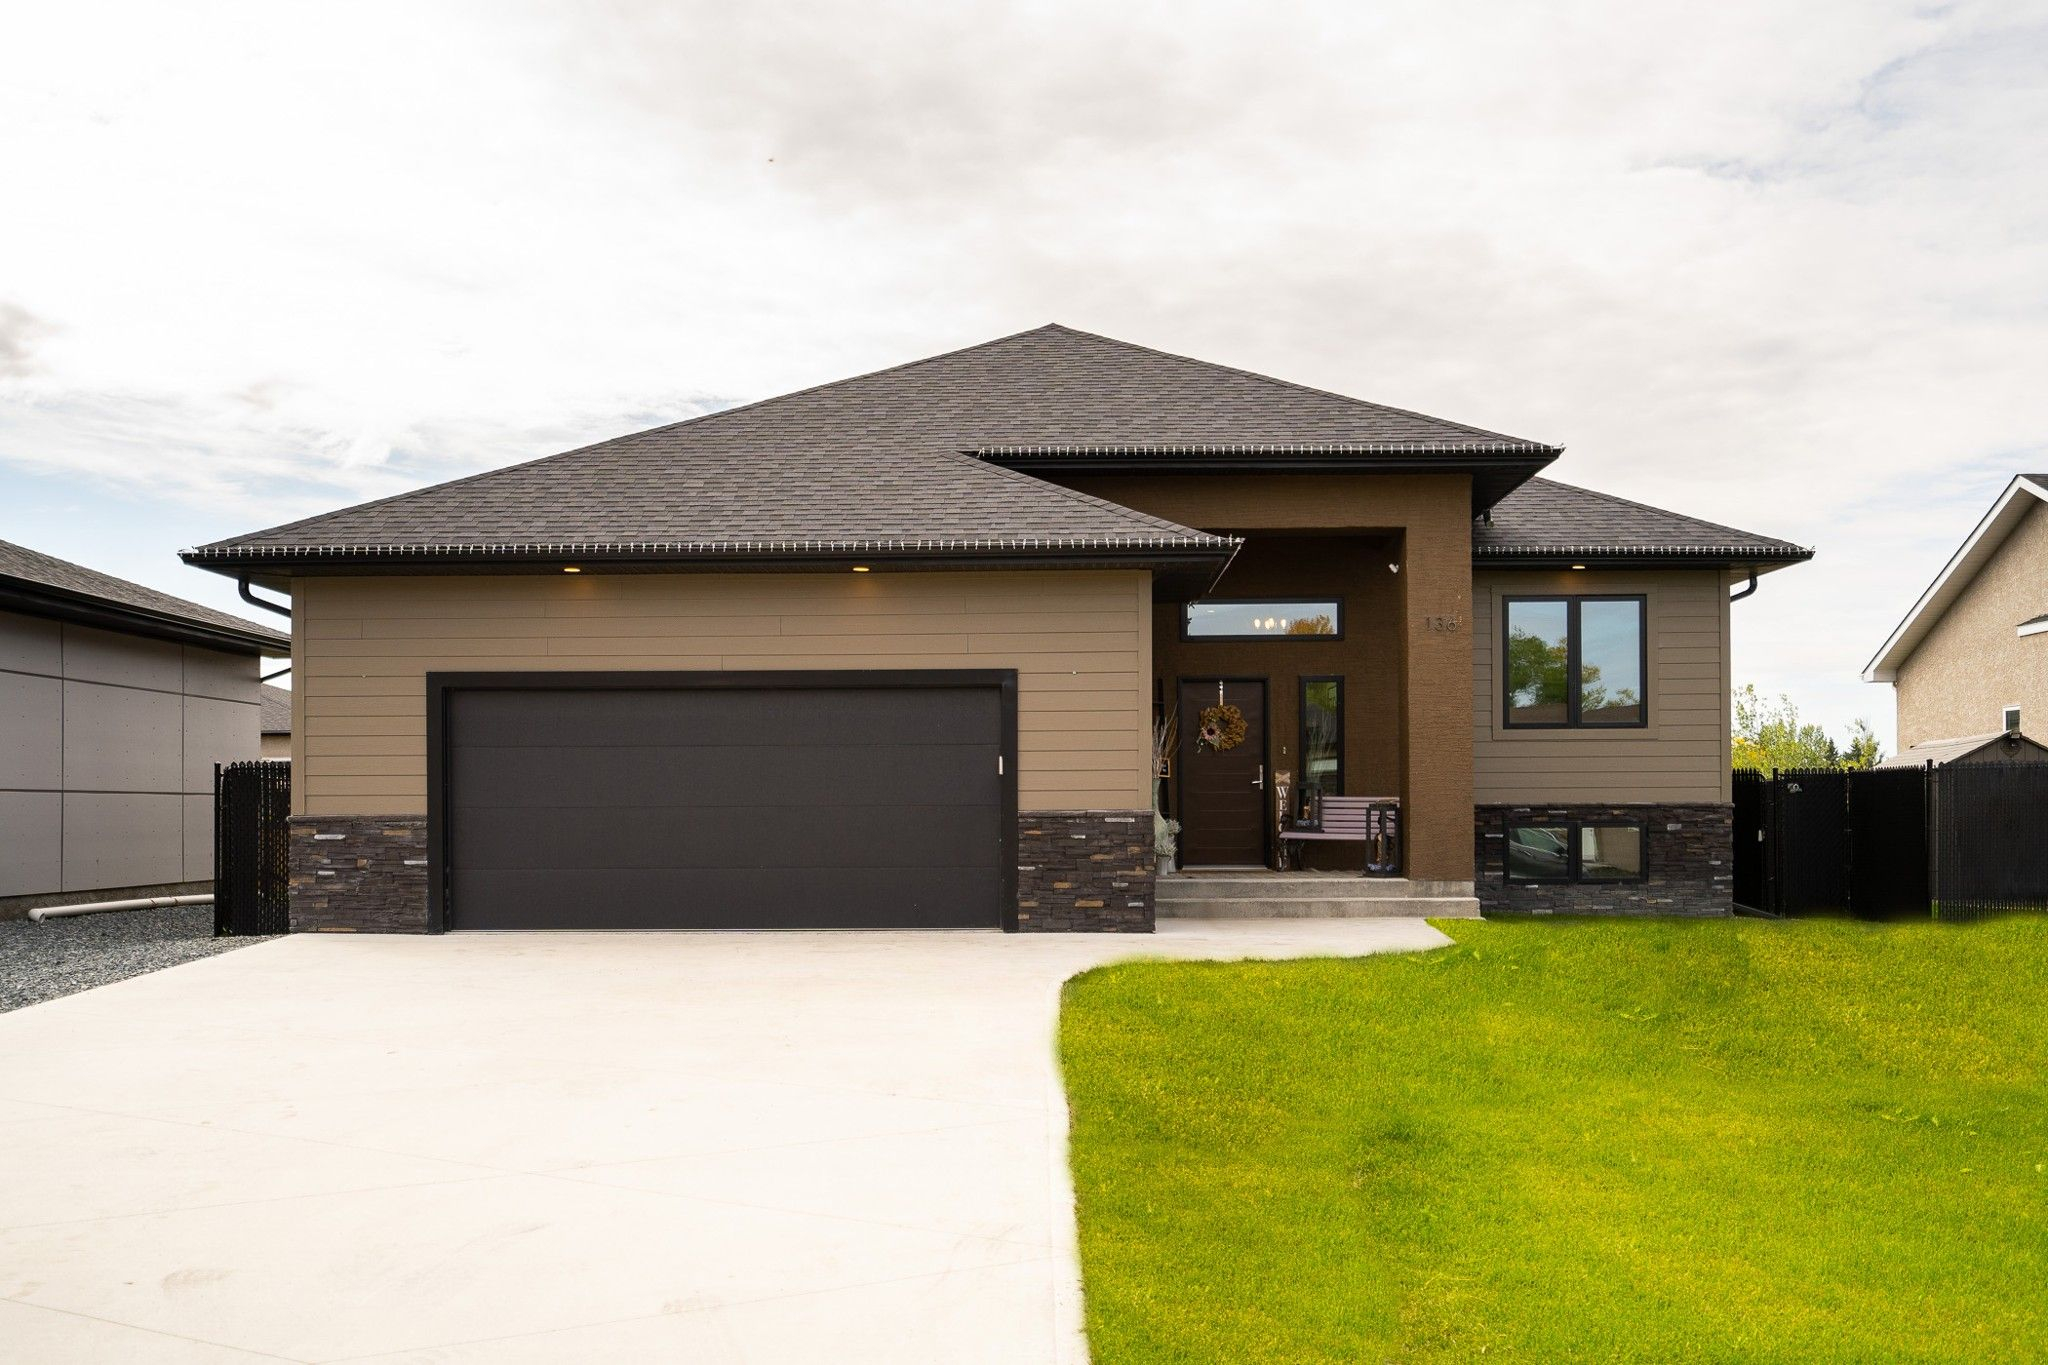 Main Photo: 136 Settlers Trail in Lorette: Serenity Trails Residential for sale (R05)  : MLS®# 202123610